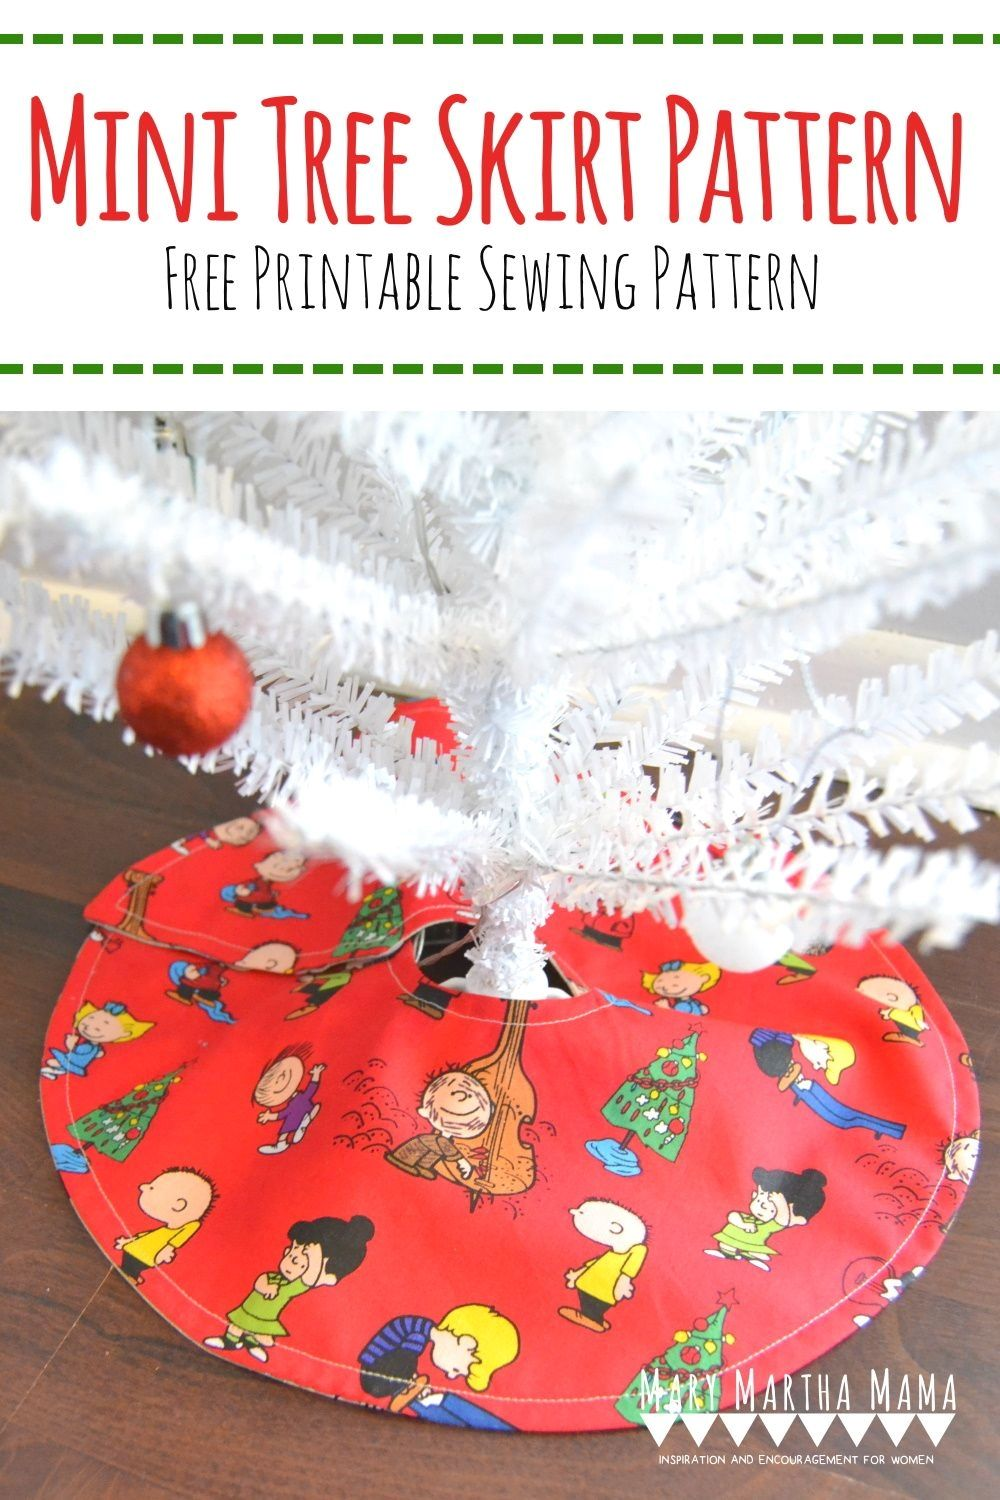 Pin by hamlin5gvtr on Sewing in 2020 Tree skirt pattern